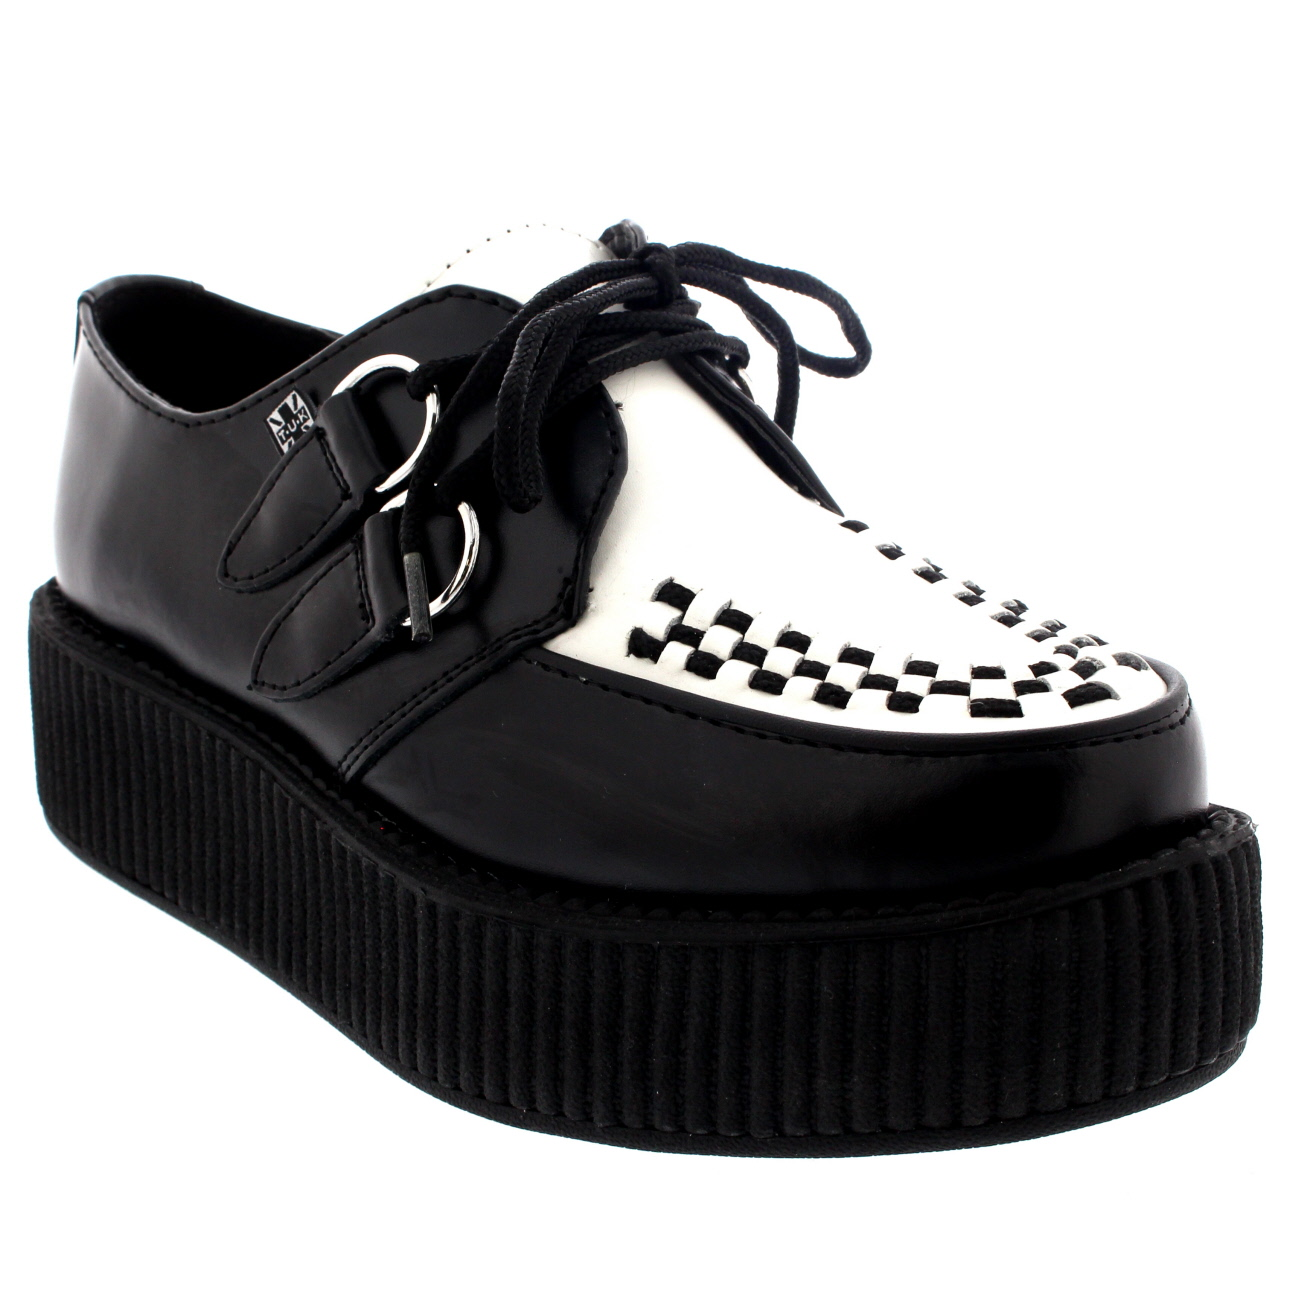 T.U.K Viva Mondo Hi Sole Creeper Shoes